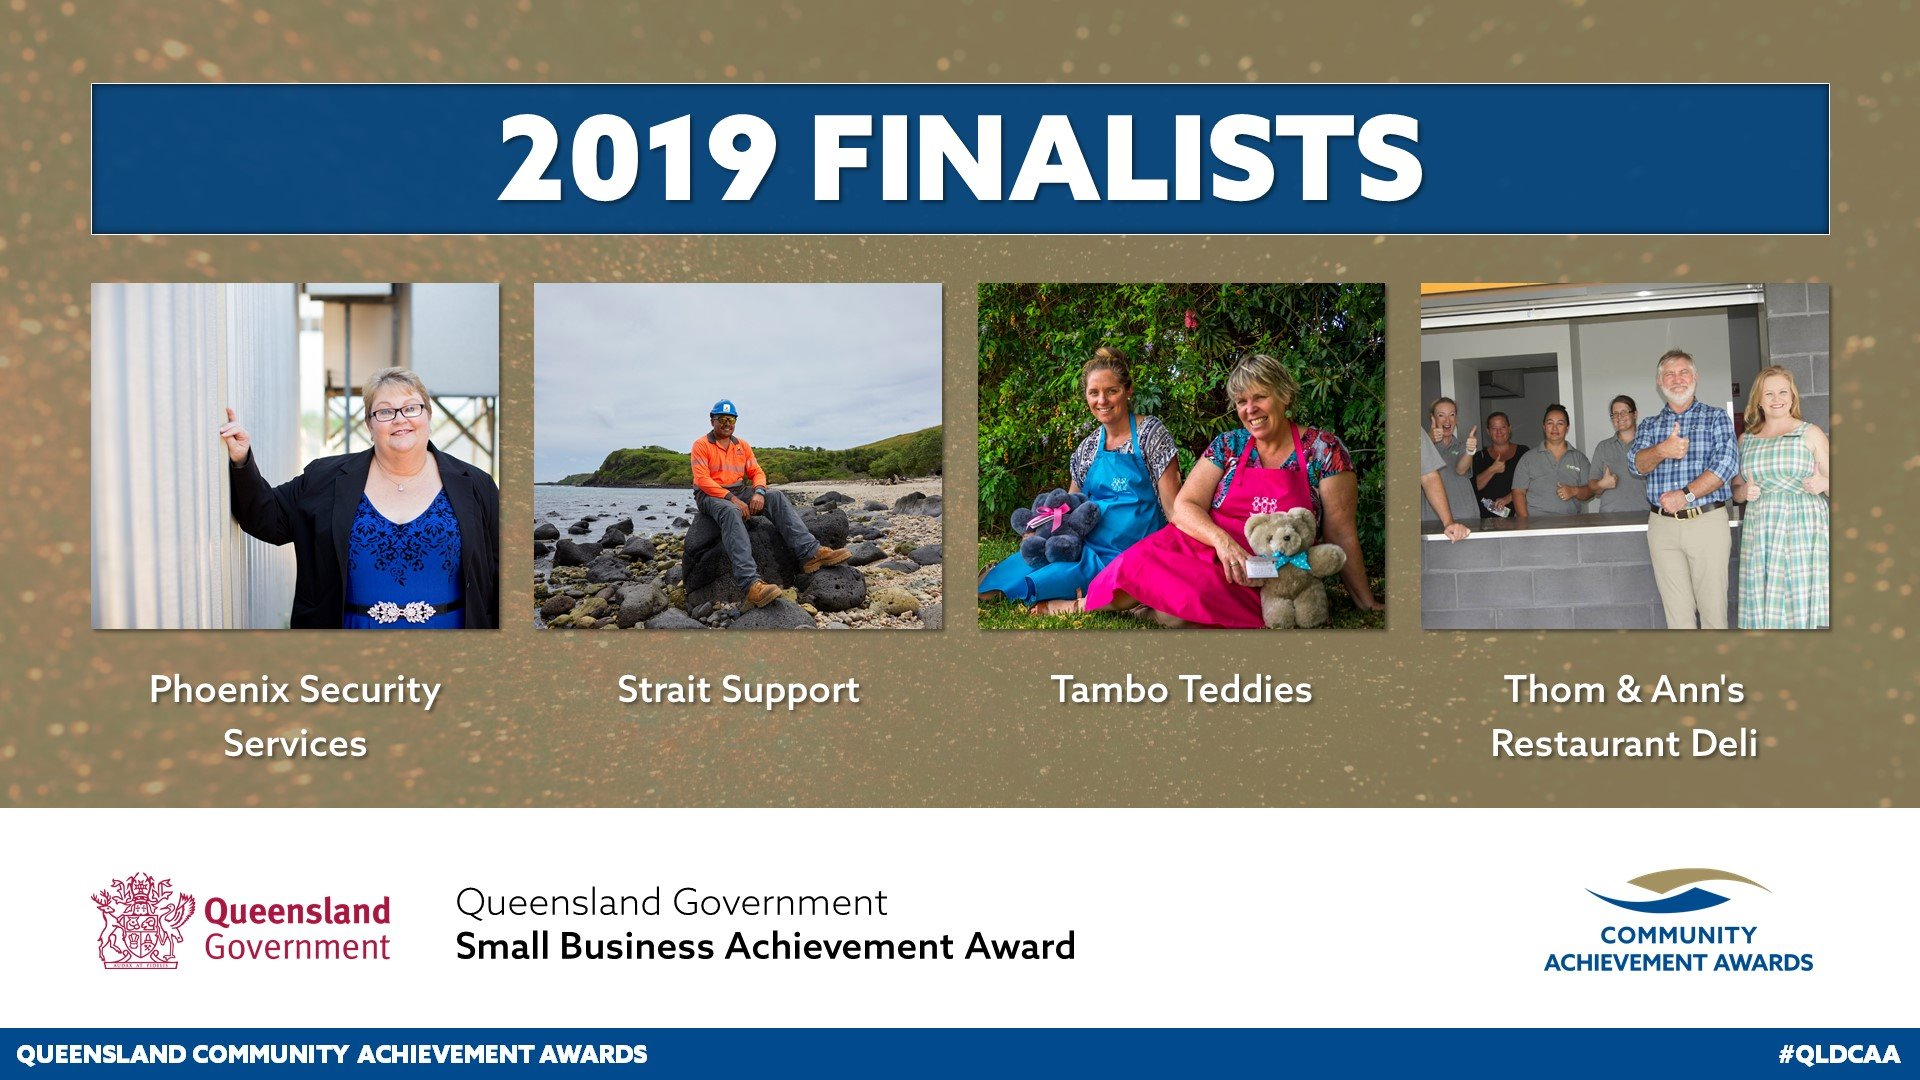 Strait Support is a finalist!